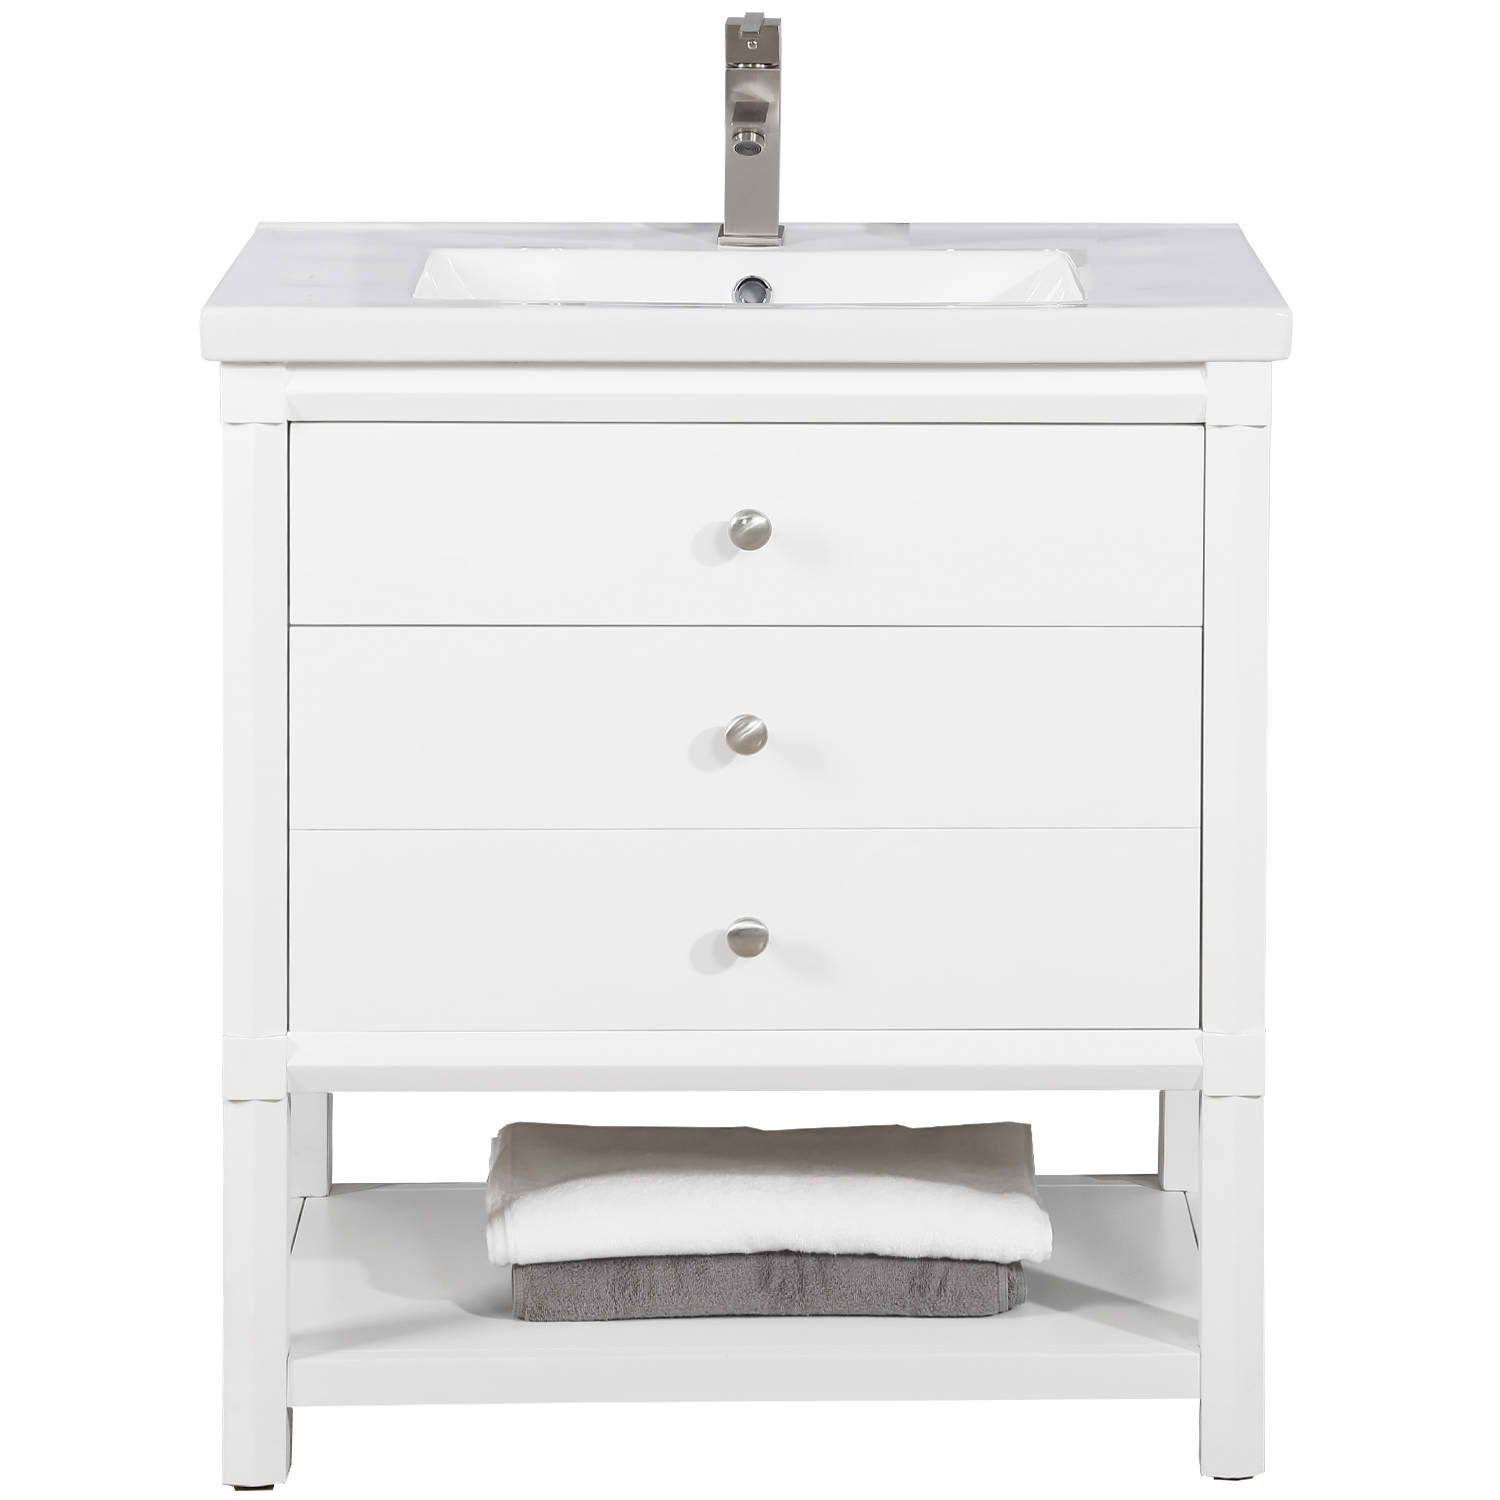 "Transitional 30"" Single Sink Vanity with Porcelain Integrated Counterop in White Finish"